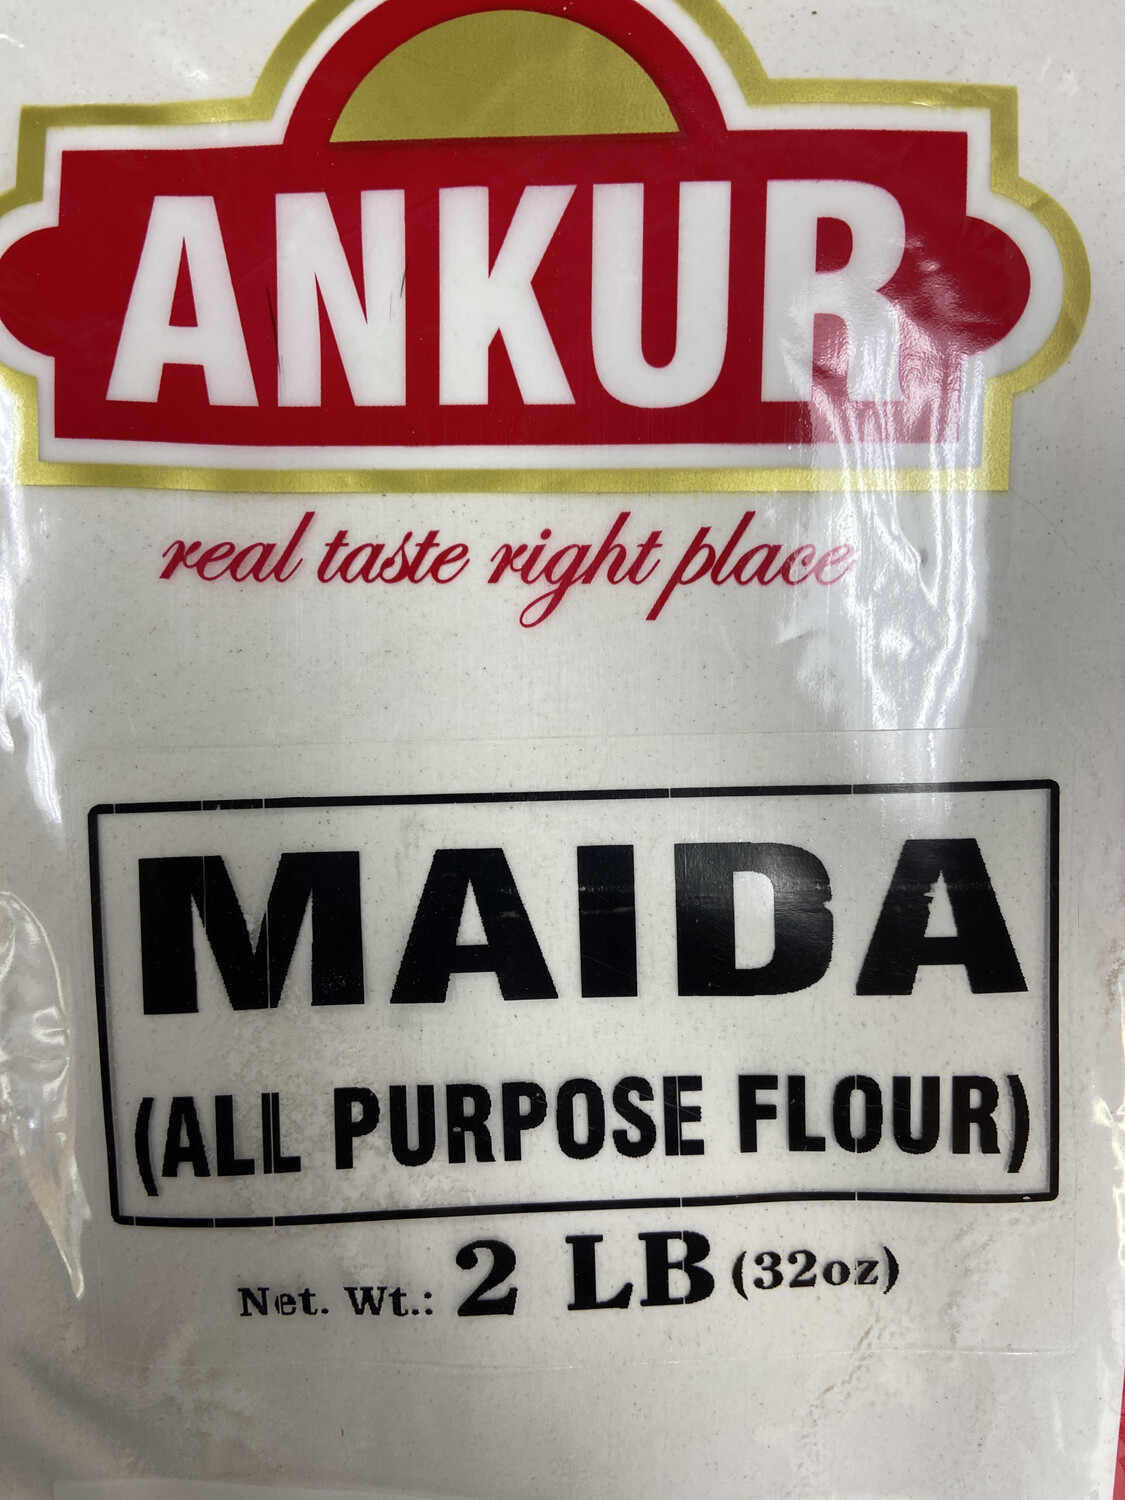 Ankur Maida All Purpose Flour 2lb